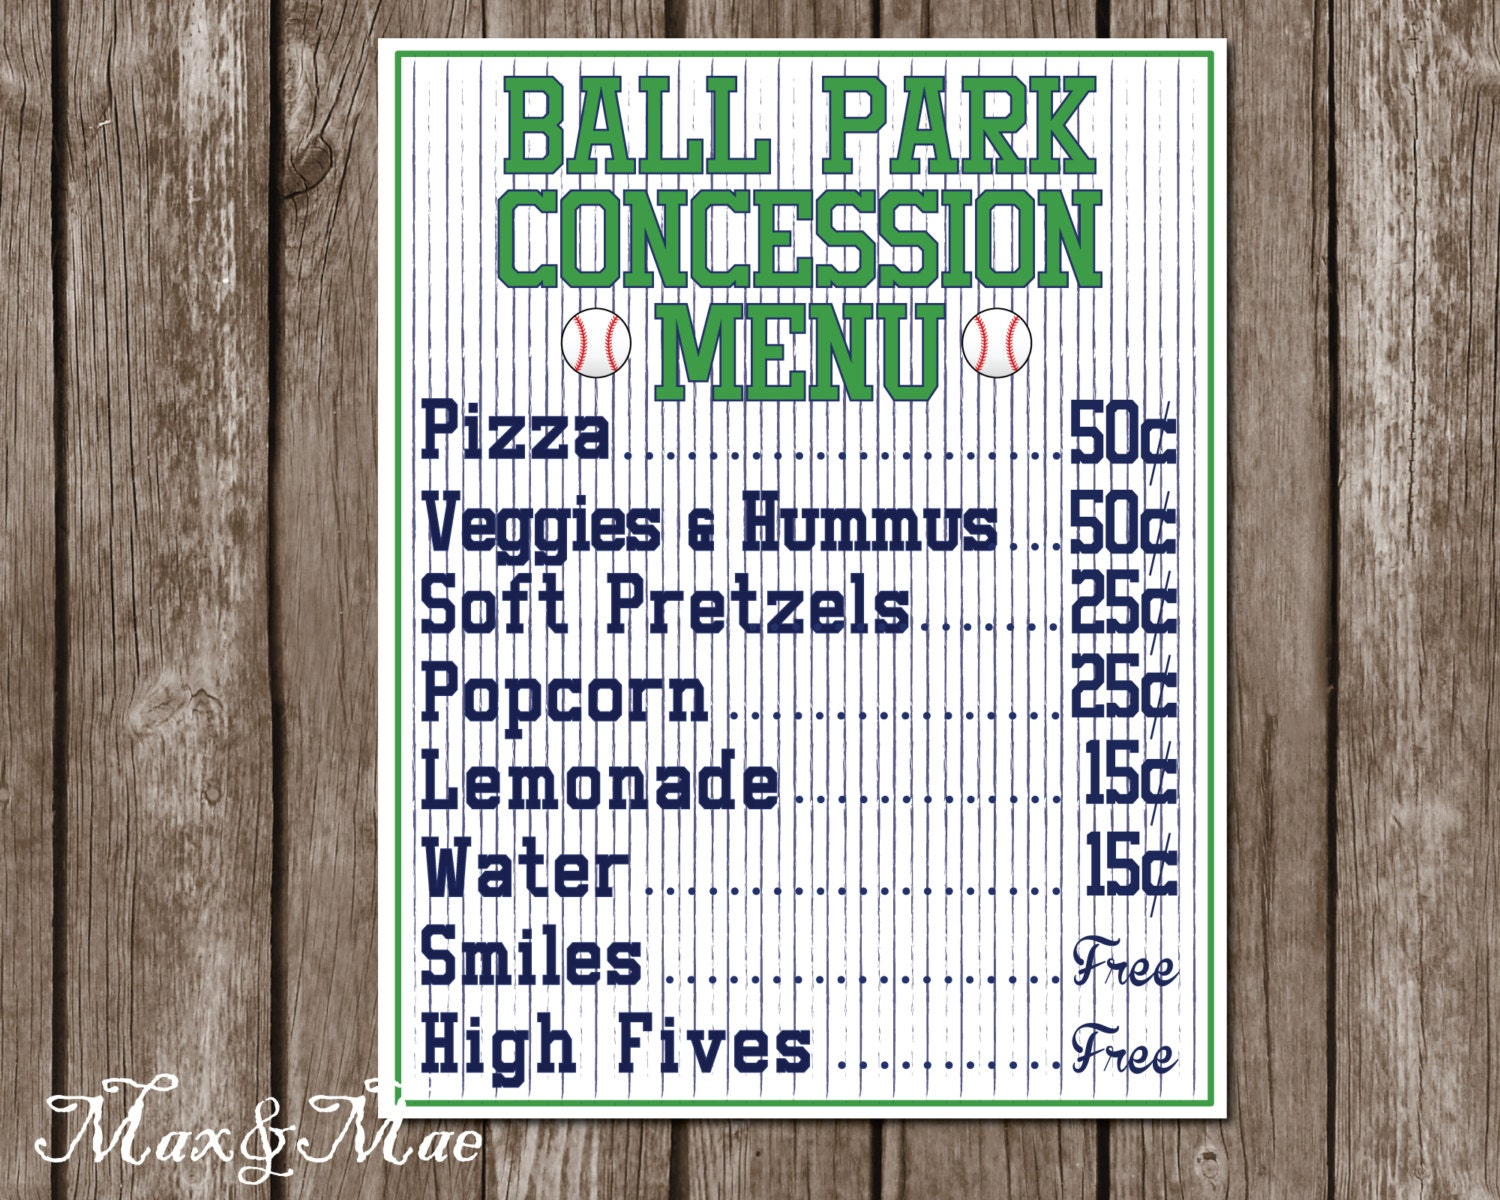 This is a photo of Ridiculous Concession Stand Signs Printable